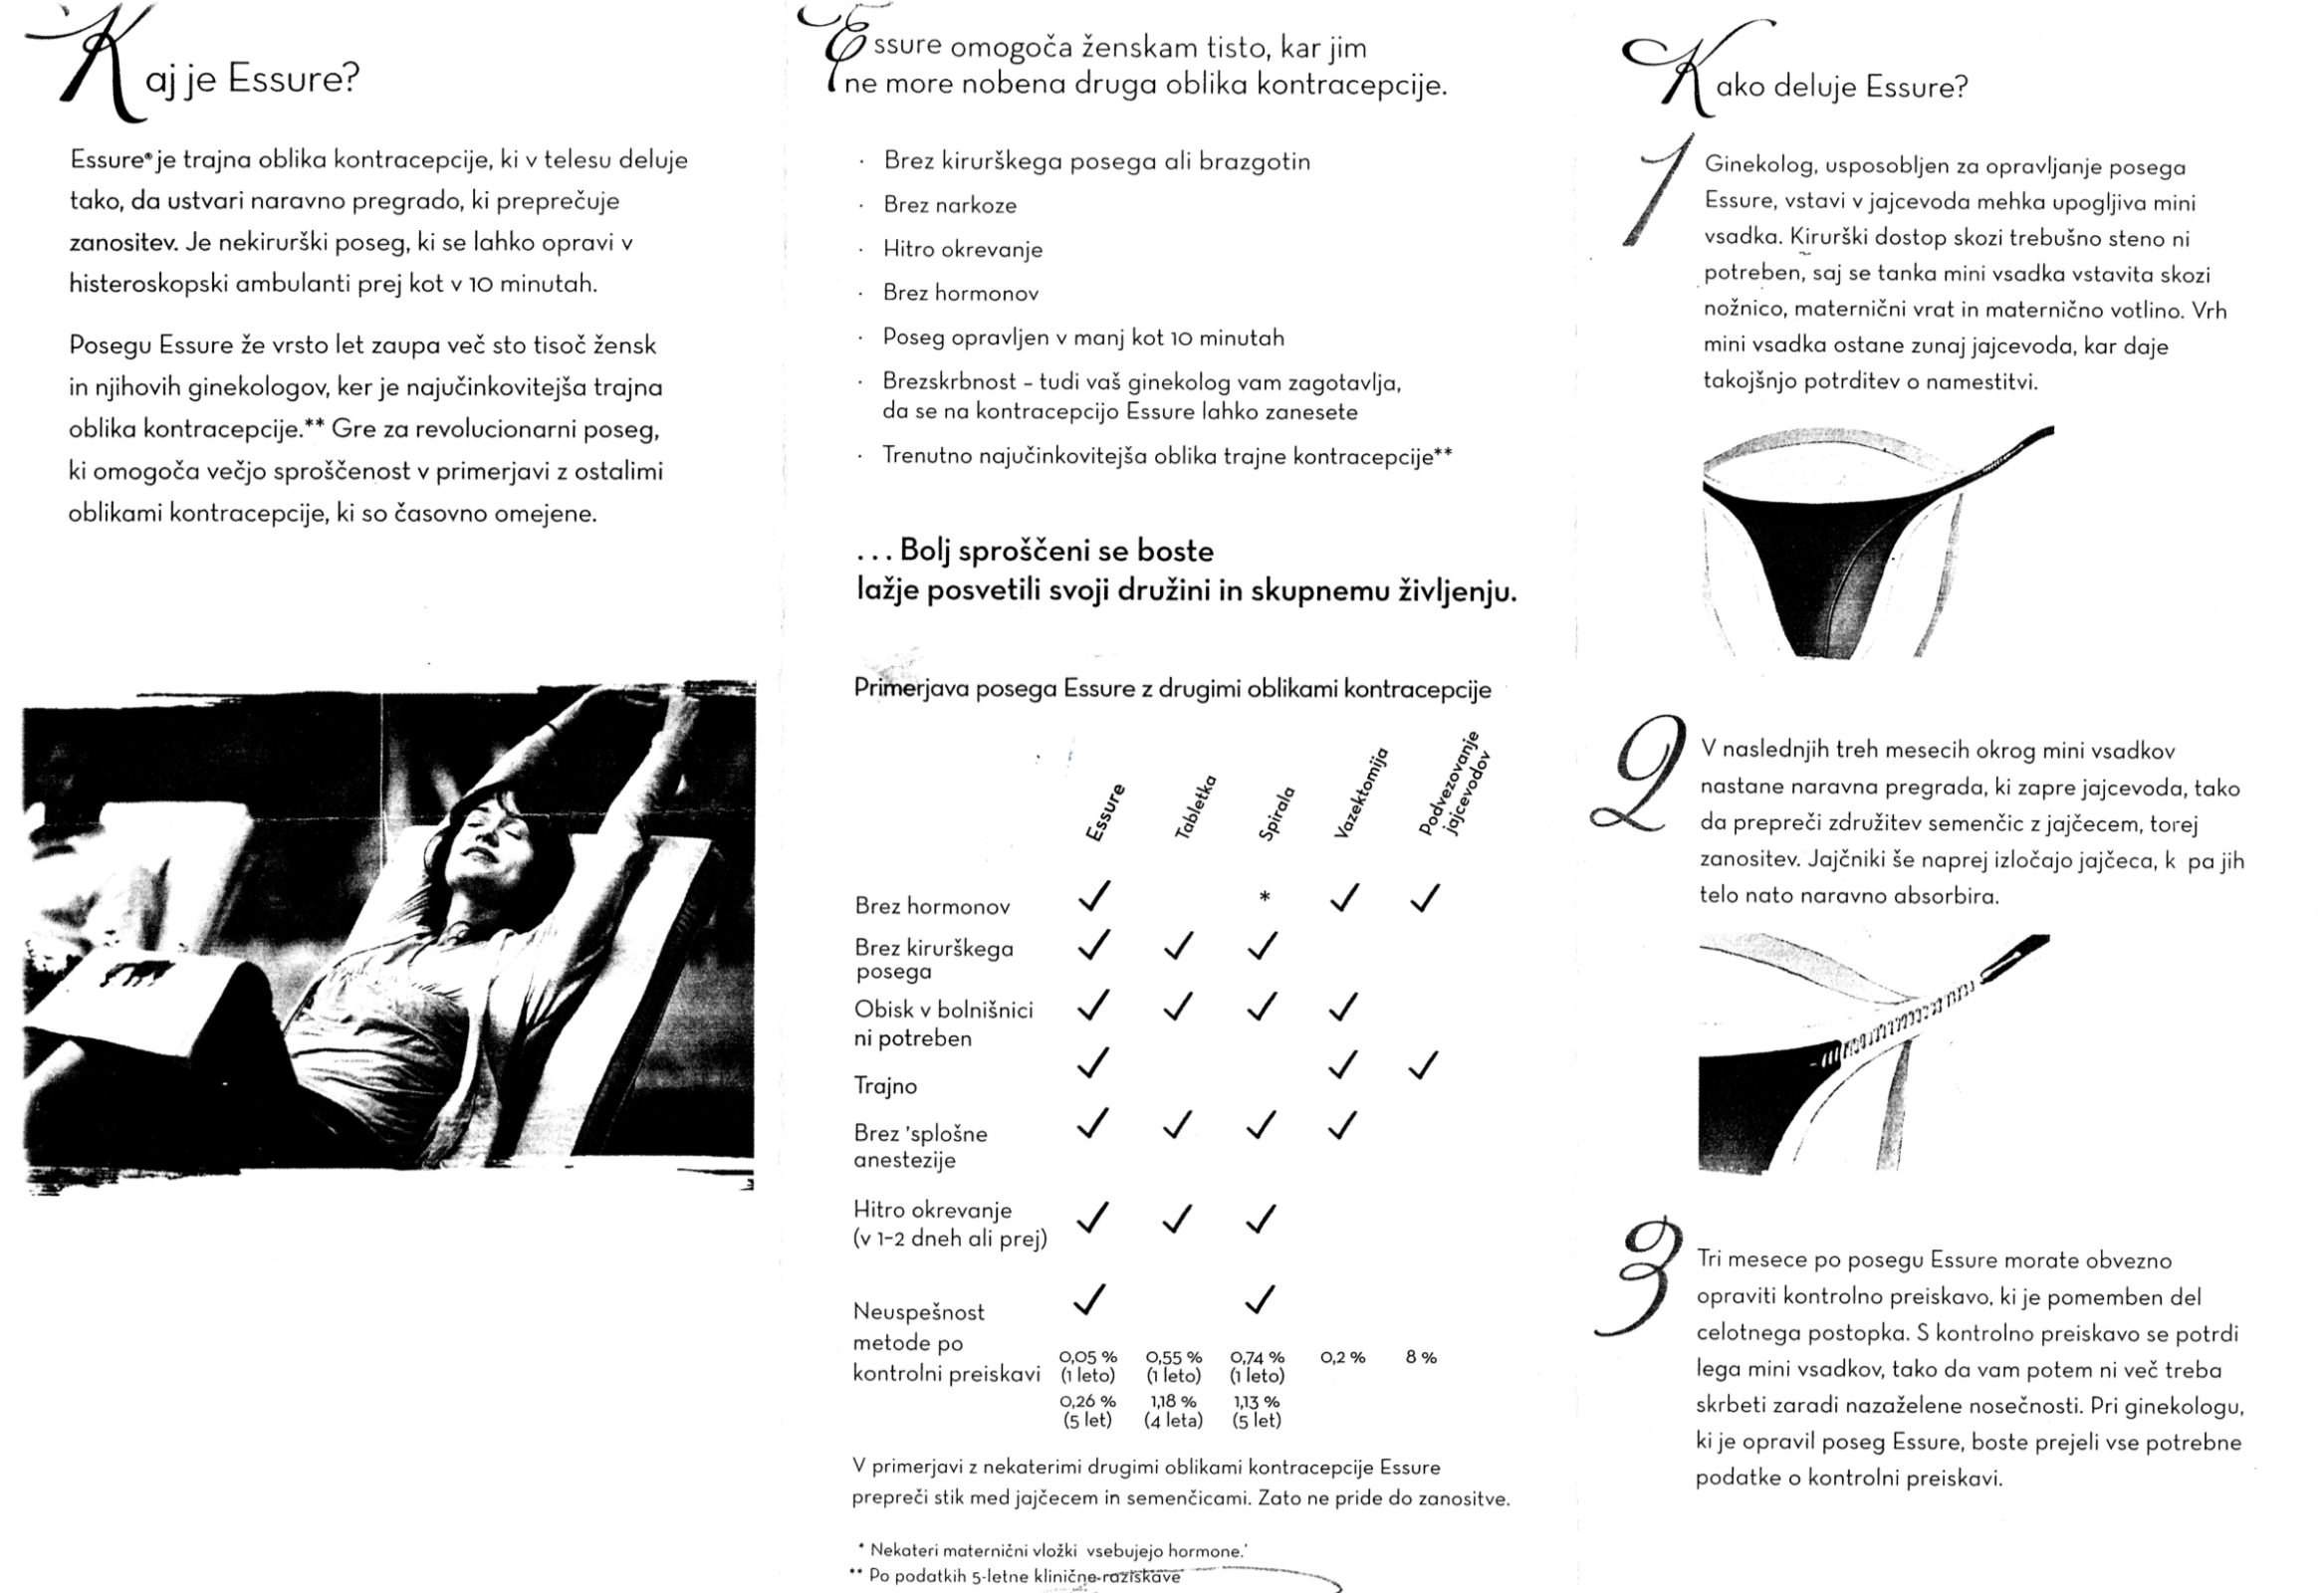 Folded leaflet containing information about Essure.